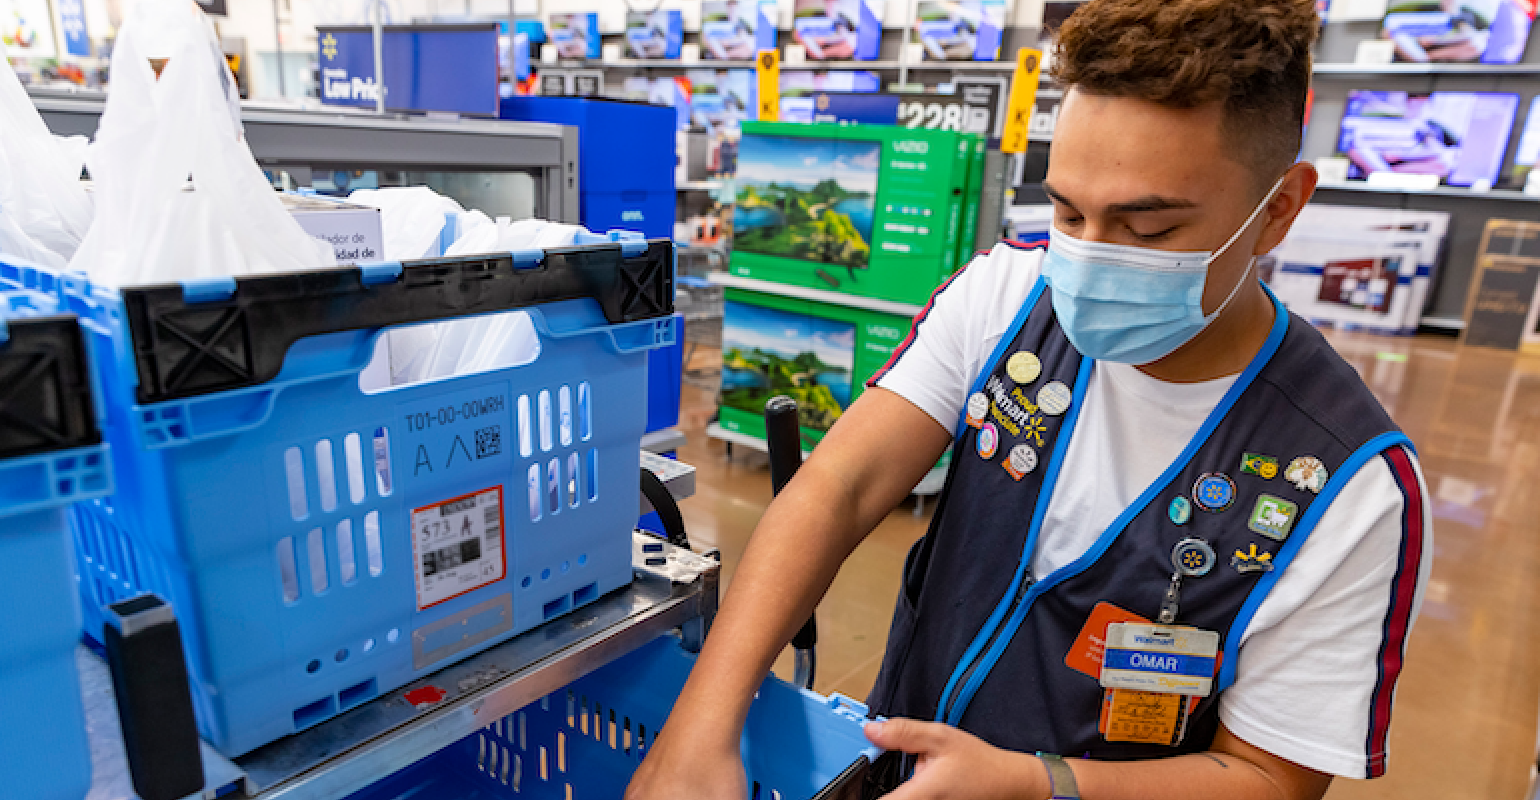 Led by surges in e-commerce Walmart, 3rd Qtr net sales climbed 6.2% to $88.35B from $83.19B a year ago. Comparable sales grew 6.3% year over year.